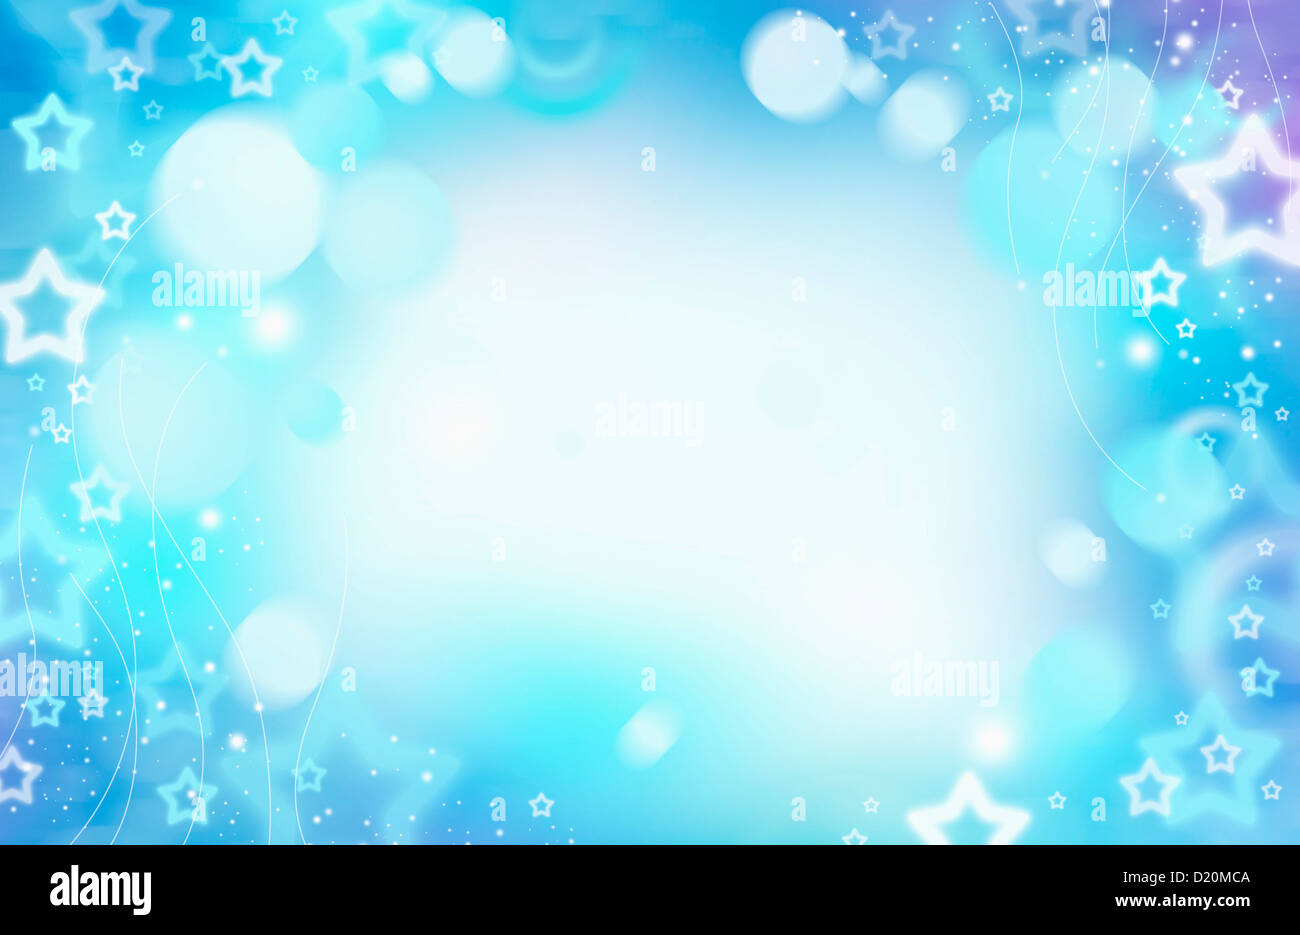 ppt template with stars on a blue and purple background stock photo